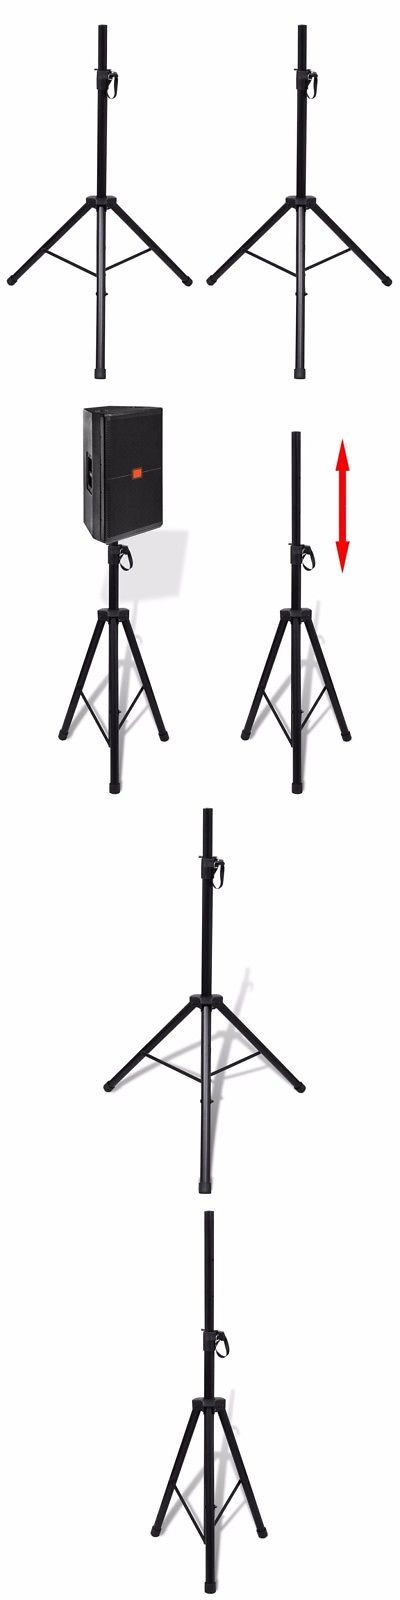 Best 25 Speaker Stands Ideas Only On Pinterest Record